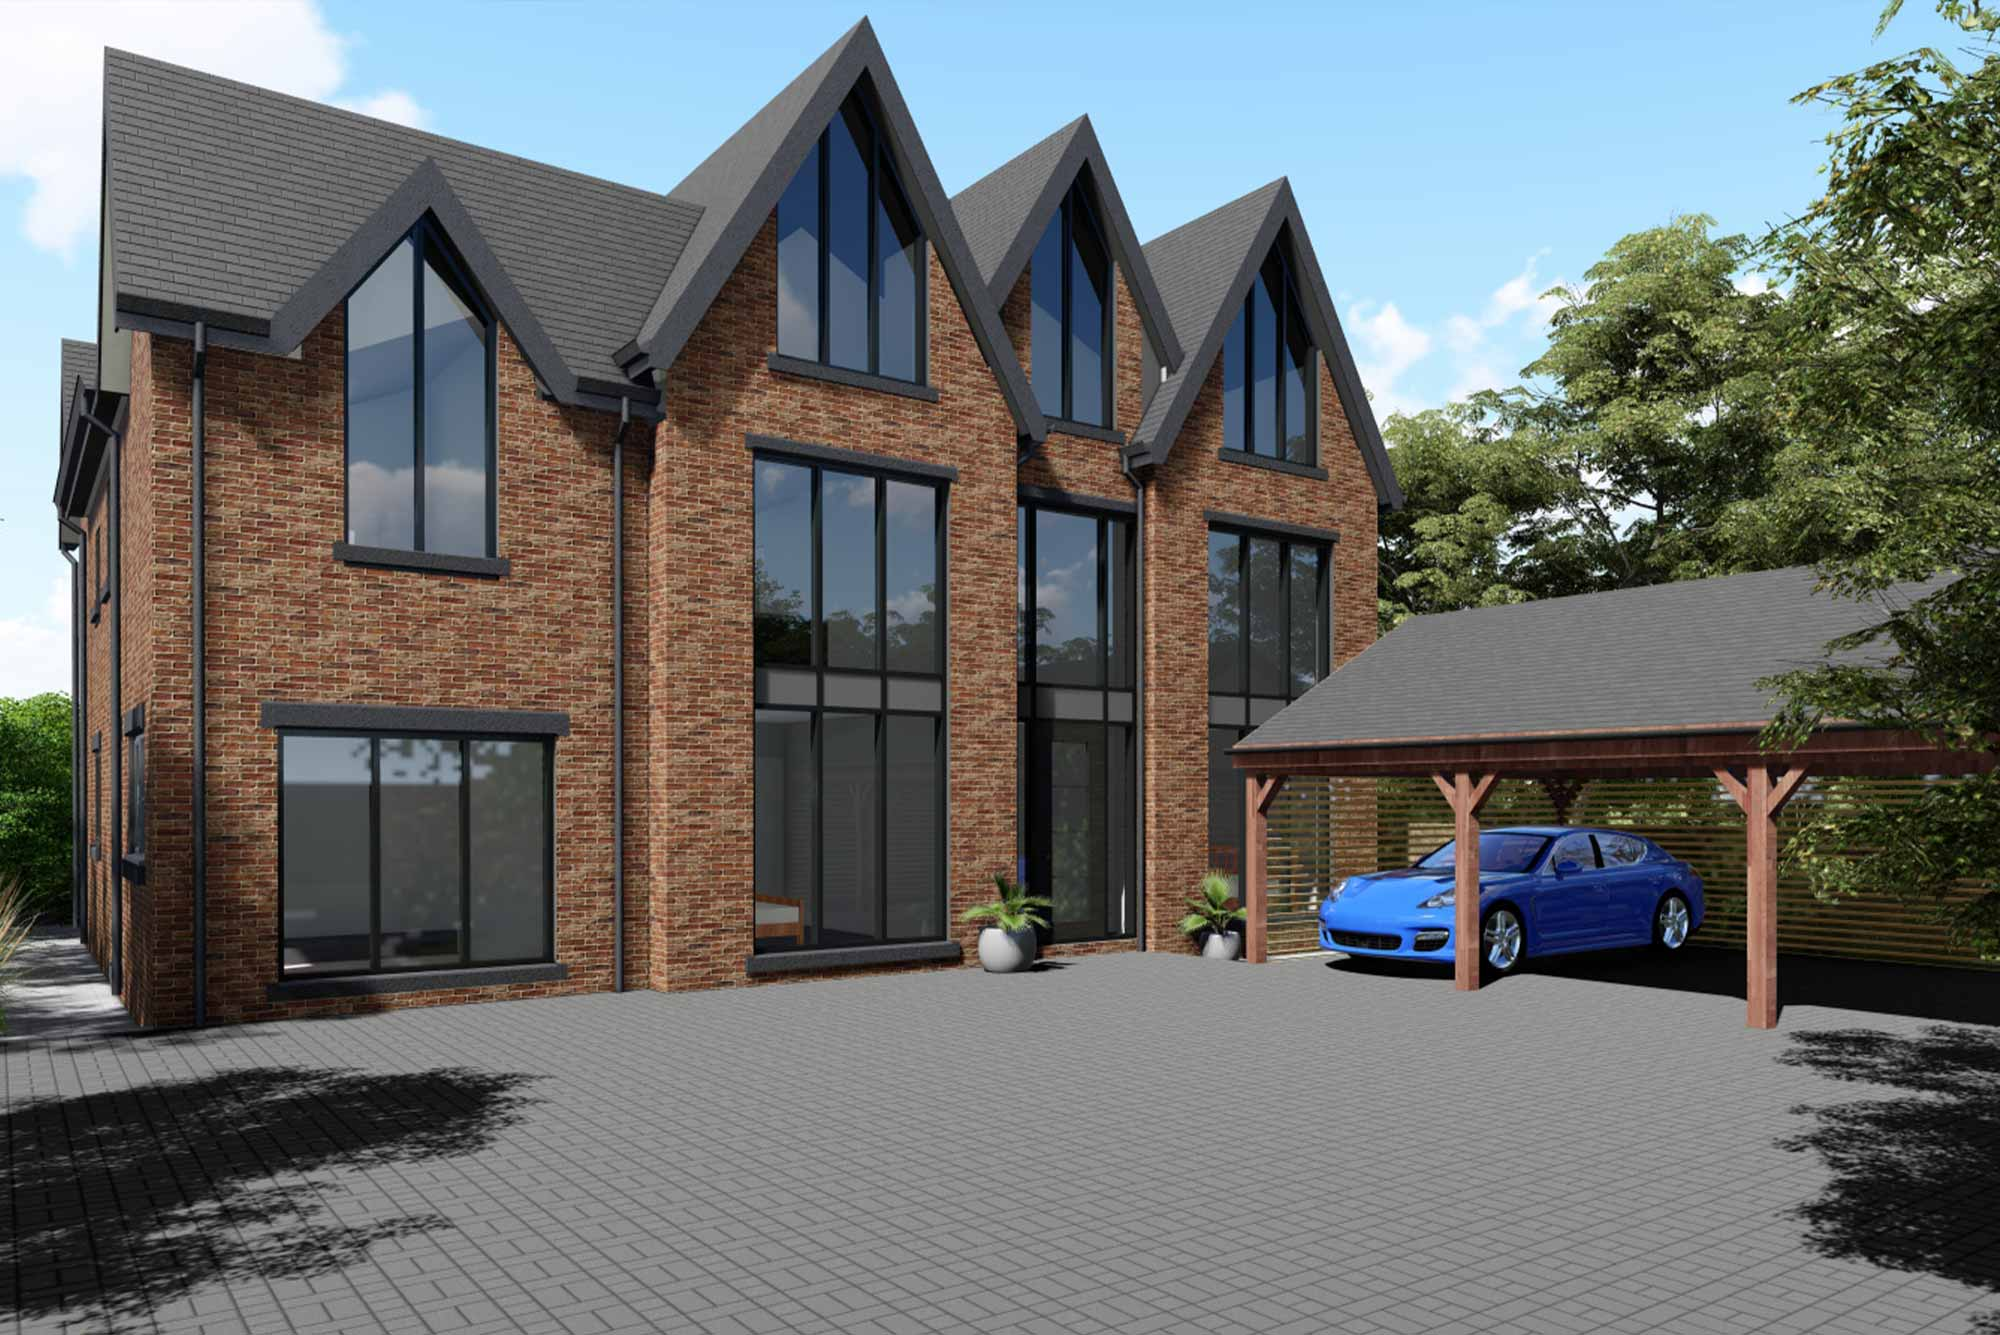 Contemporary take on a Victorian architectural style, featuring tall apex windows and rear terrace